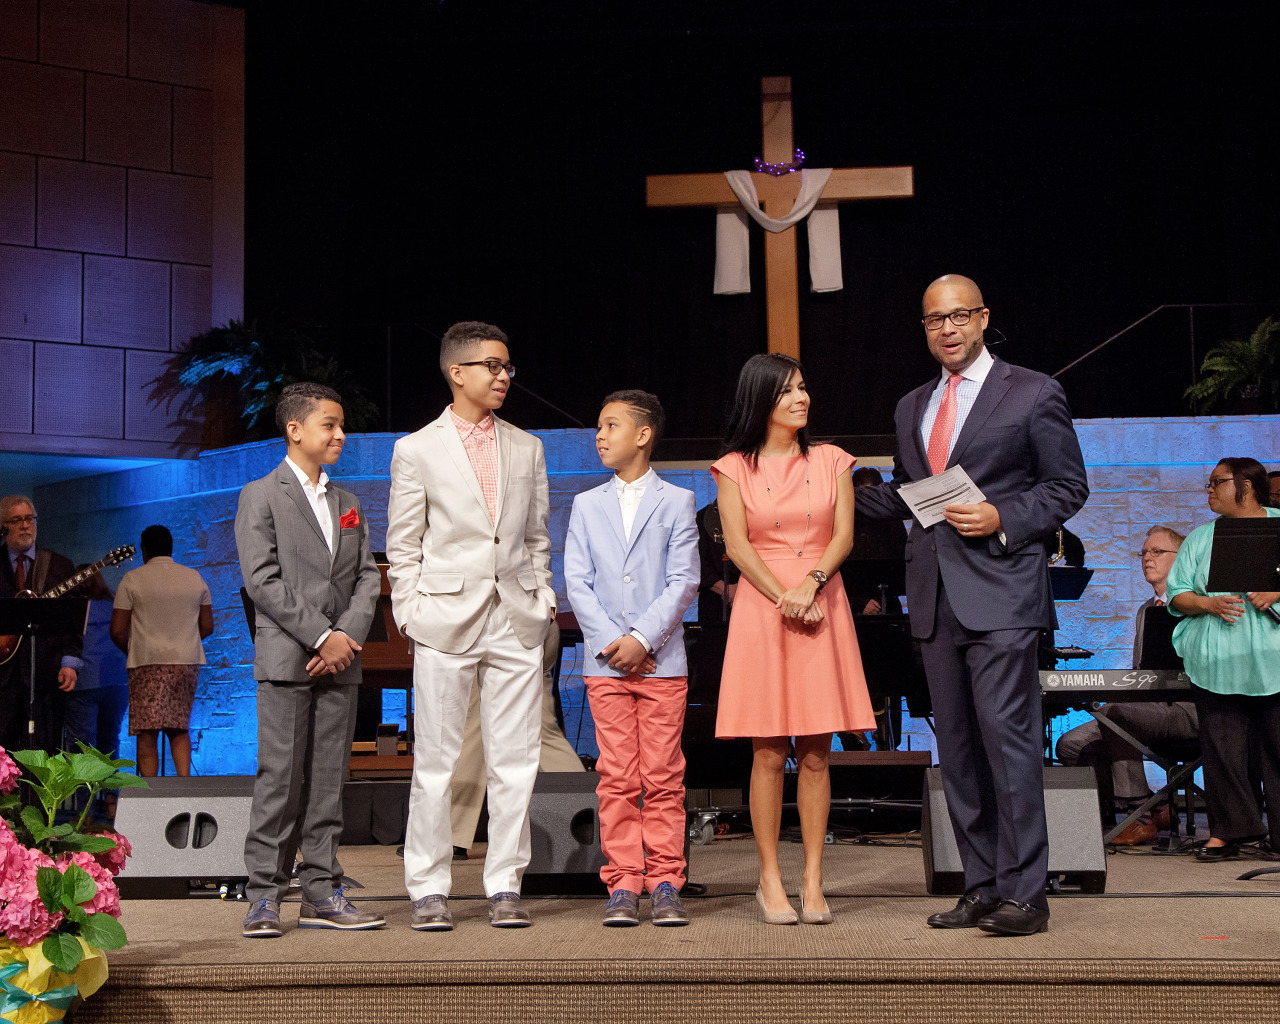 Pastor Bryan Loritts introduces family–Myles, Quentin, Jaden, and wife Korie (L to R) along with all Easter Sunday 2016 first-time guests  To see more Easter Sunday 2016 photos, visit  Facebook.com/ALCF